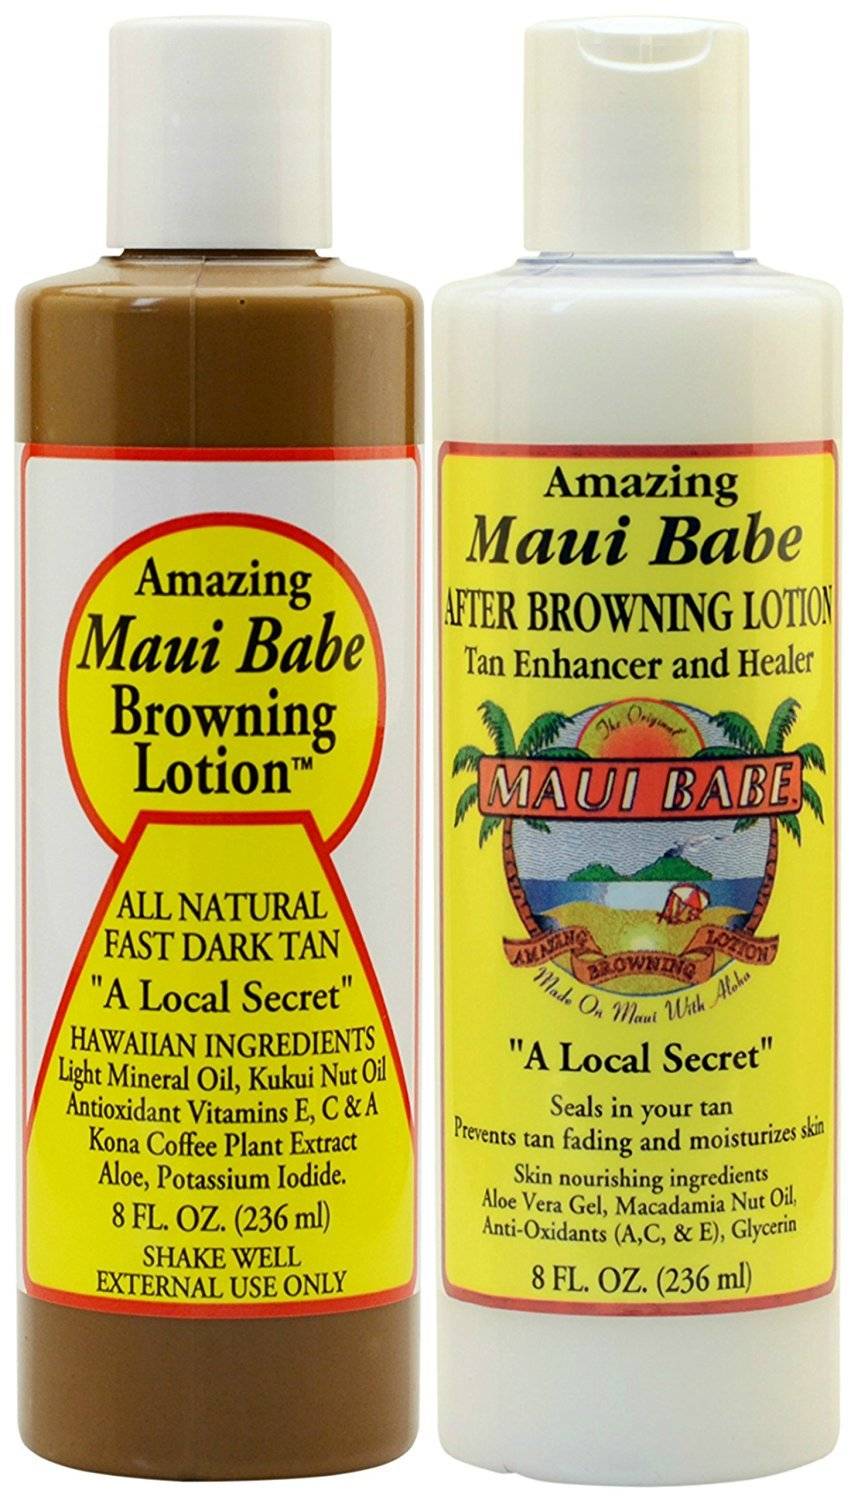 Maui Babe Before and After Sun Pack (Browning Lotion 8 oz, After Browning Lotion 8 oz) by Maui Babe